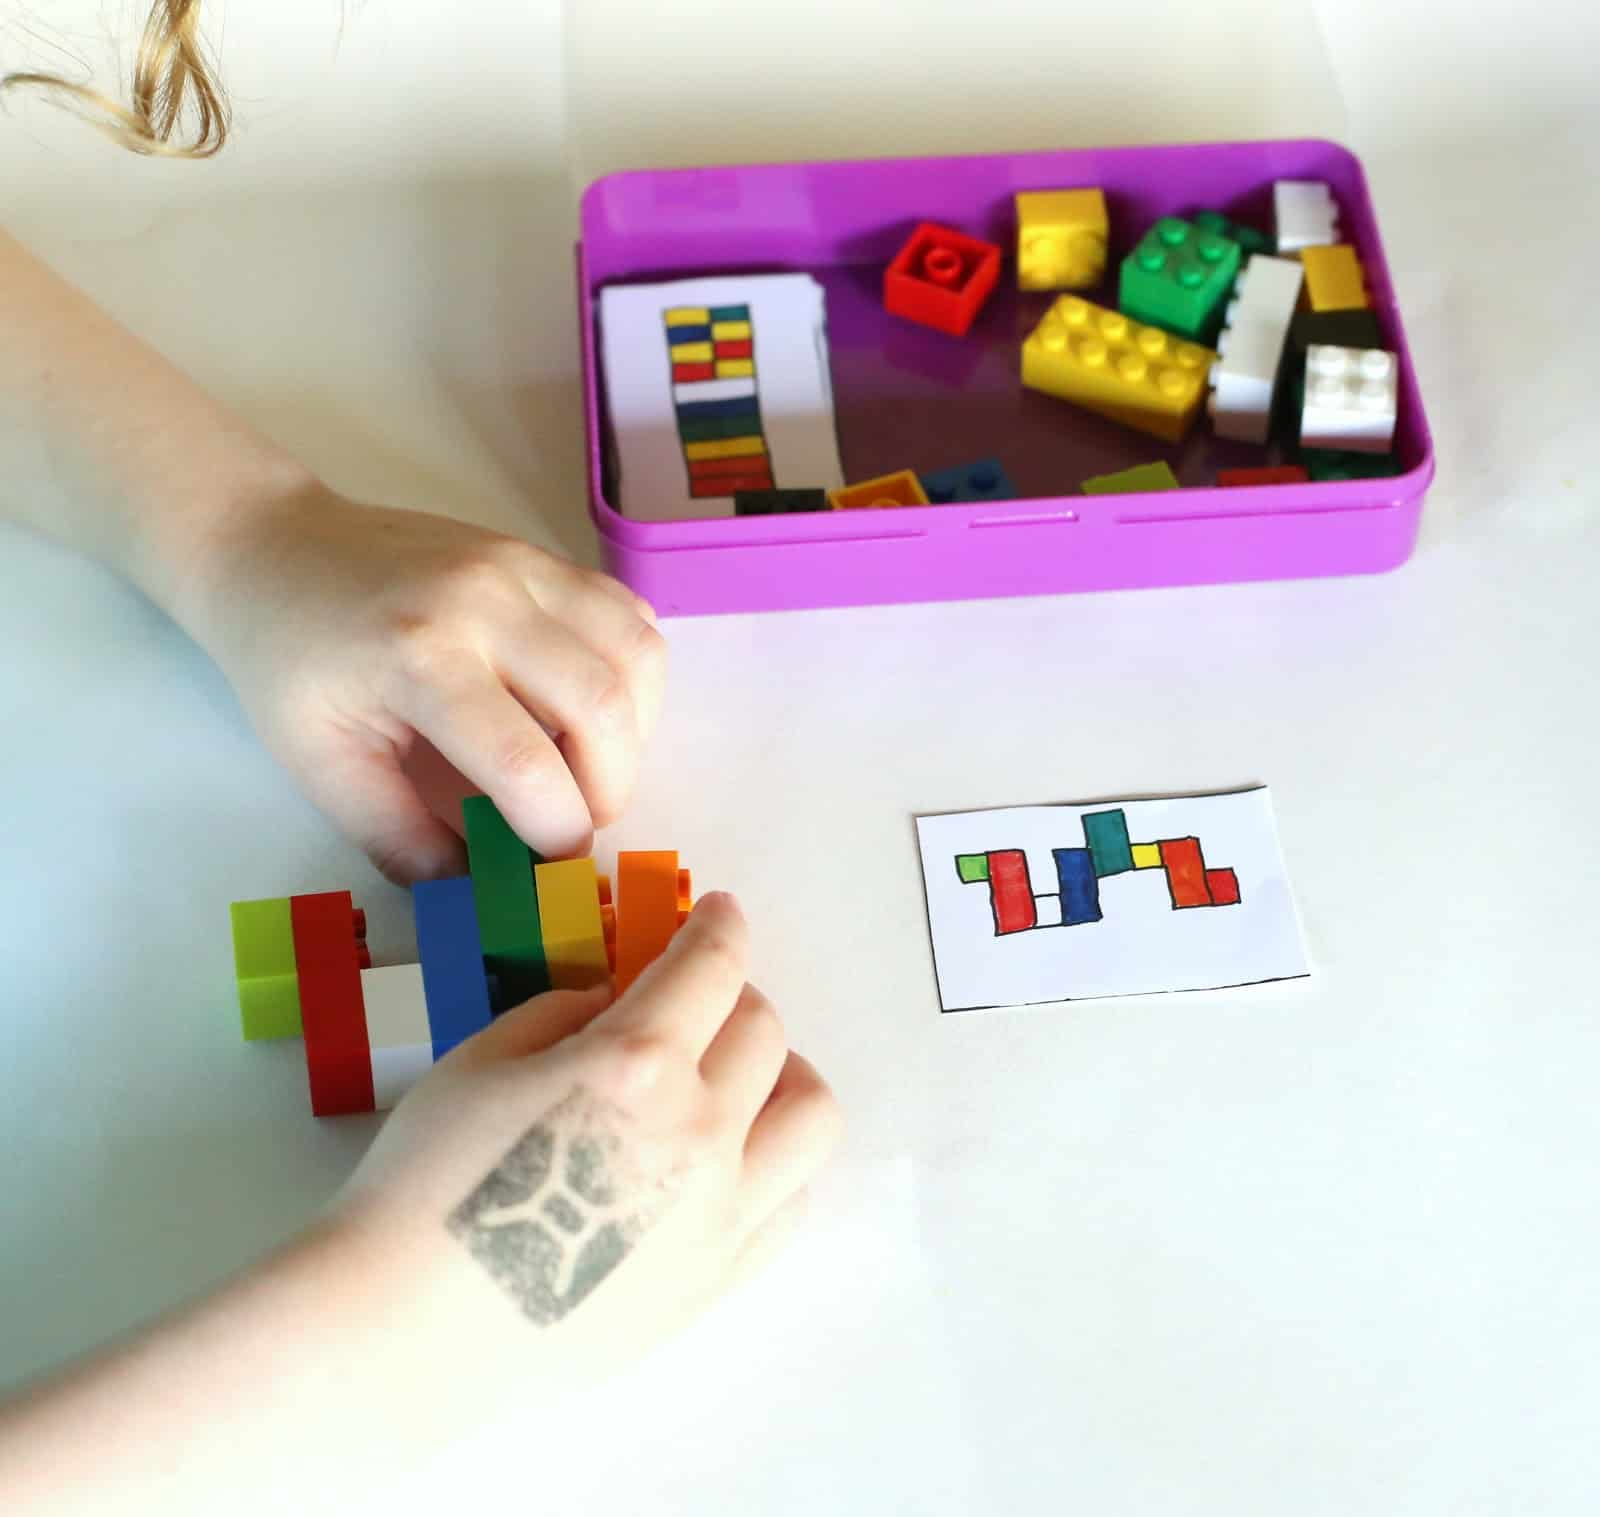 DIY Portable LEGO Kit with 24 Free Printable Activity Cards